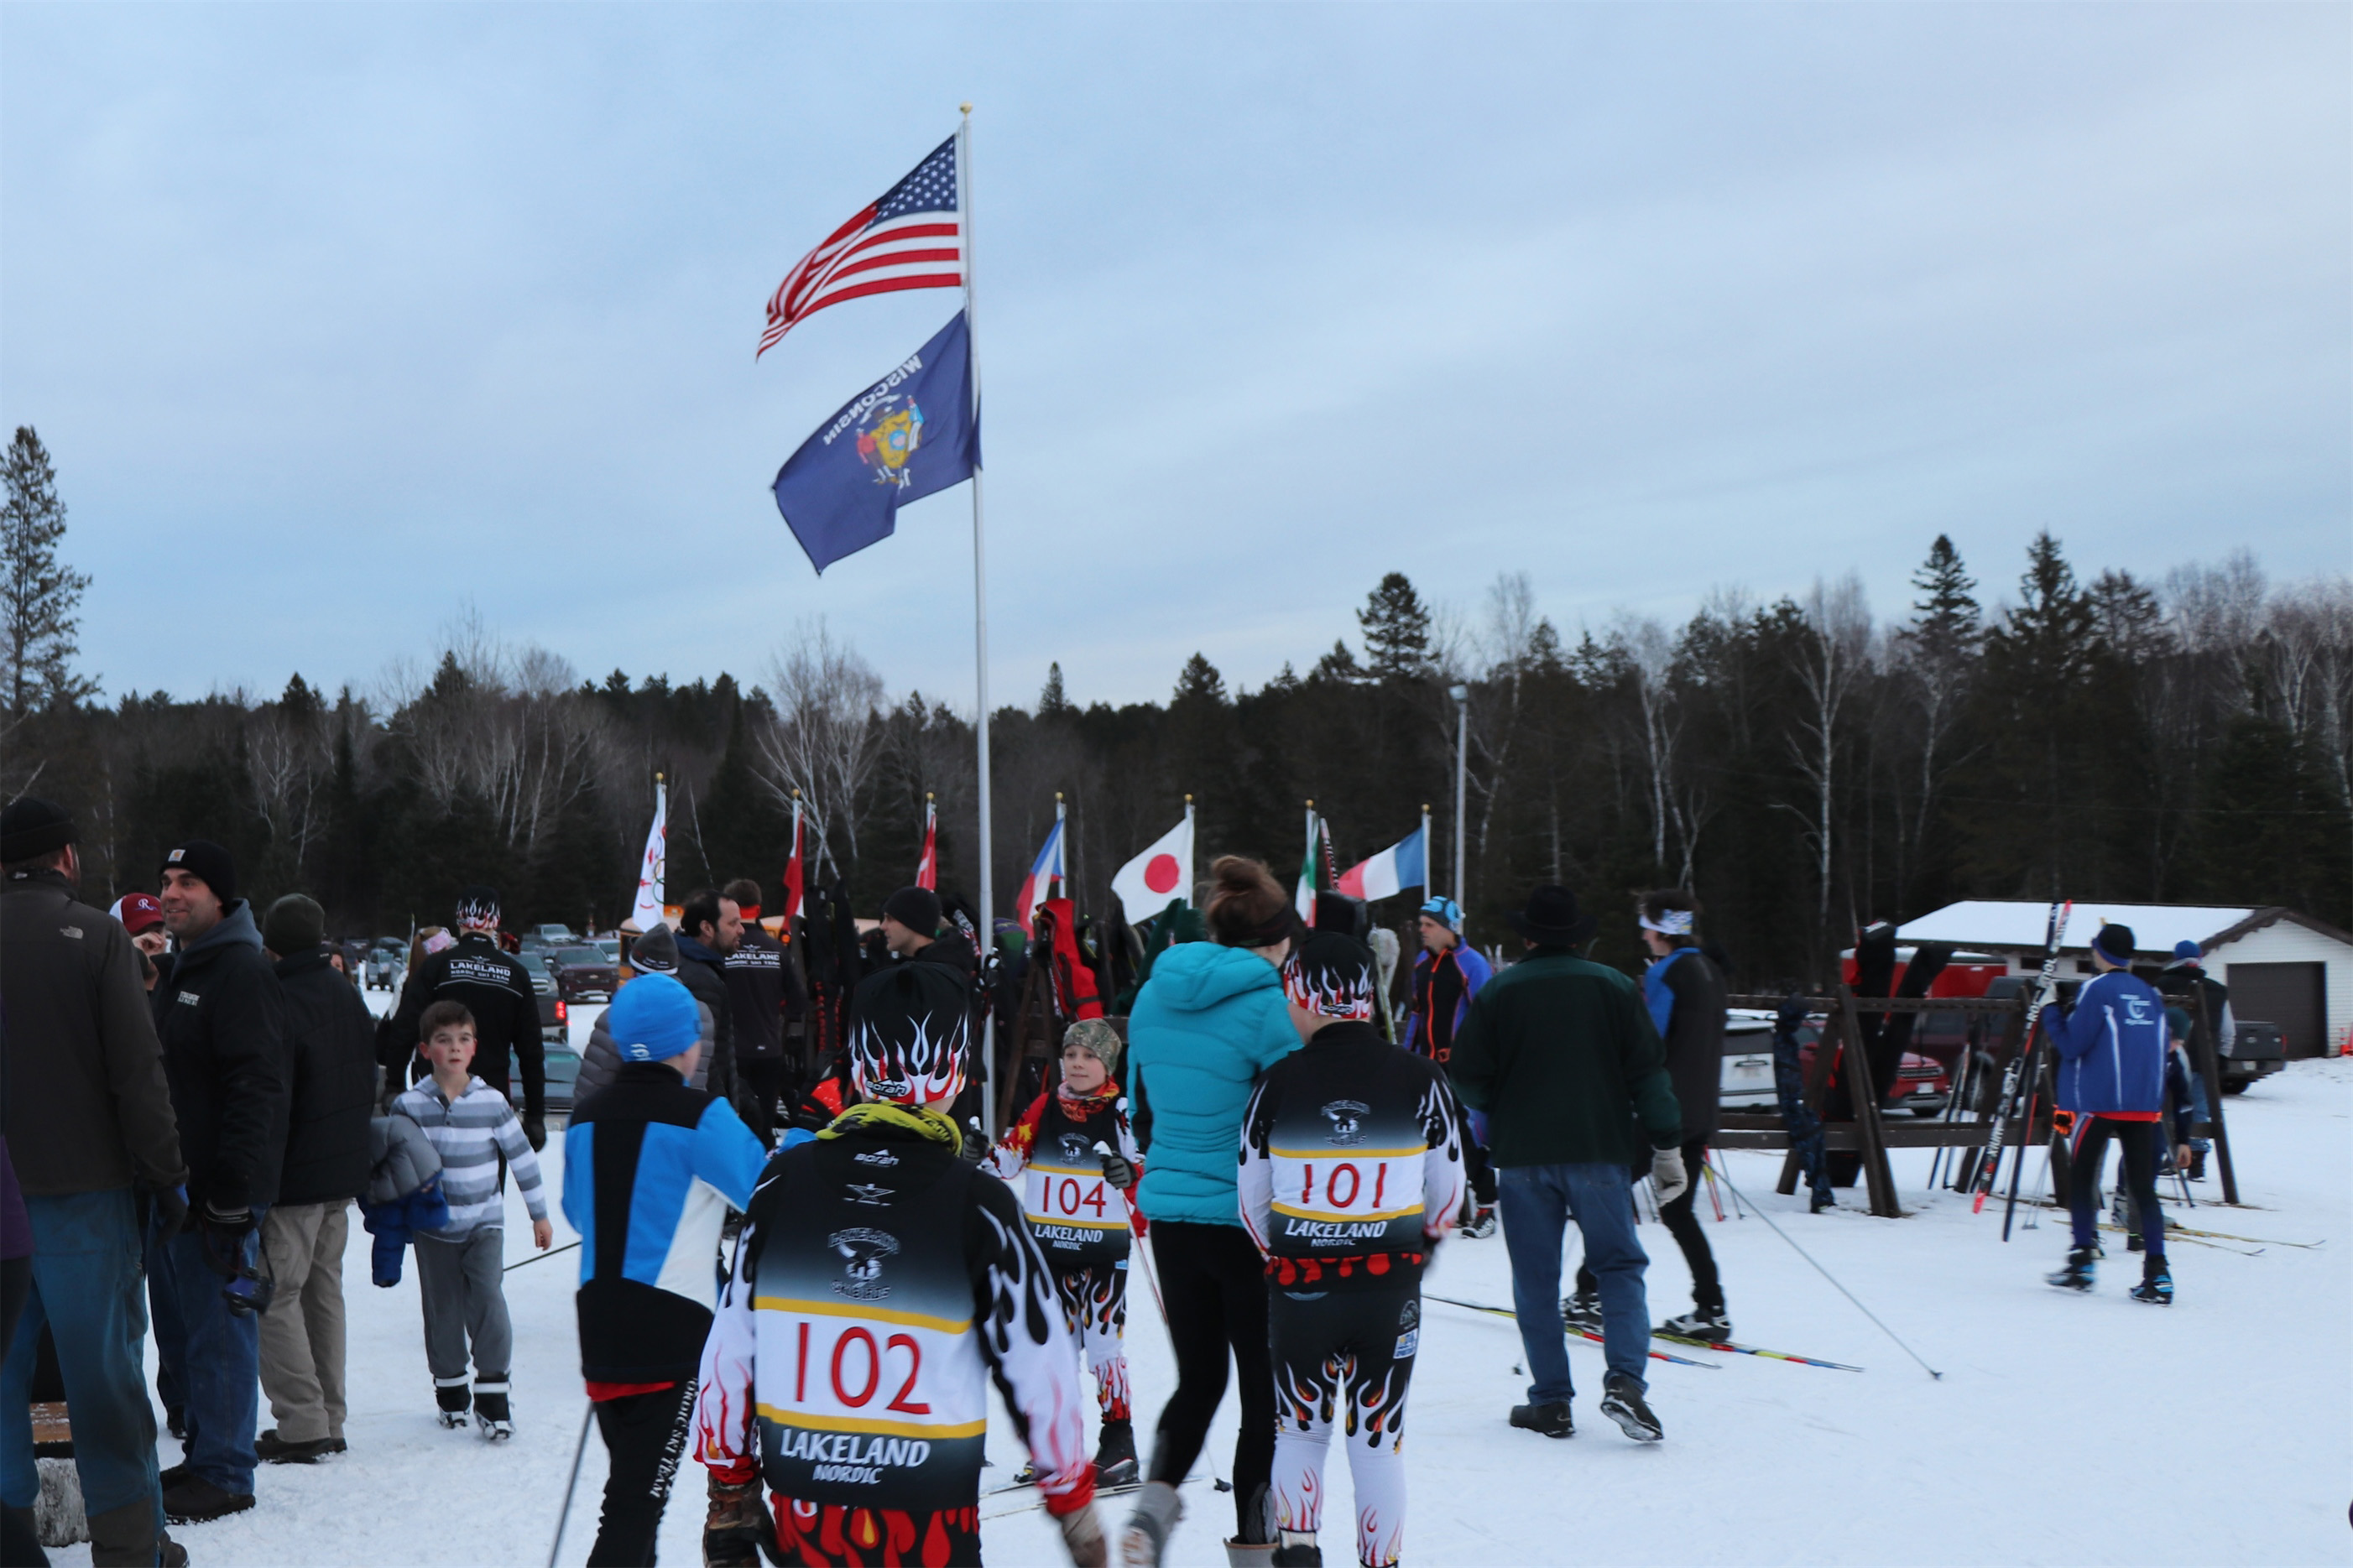 Minocqua Winter Park had a great turnout for their recent hosted ski race. Kim Johnson photo